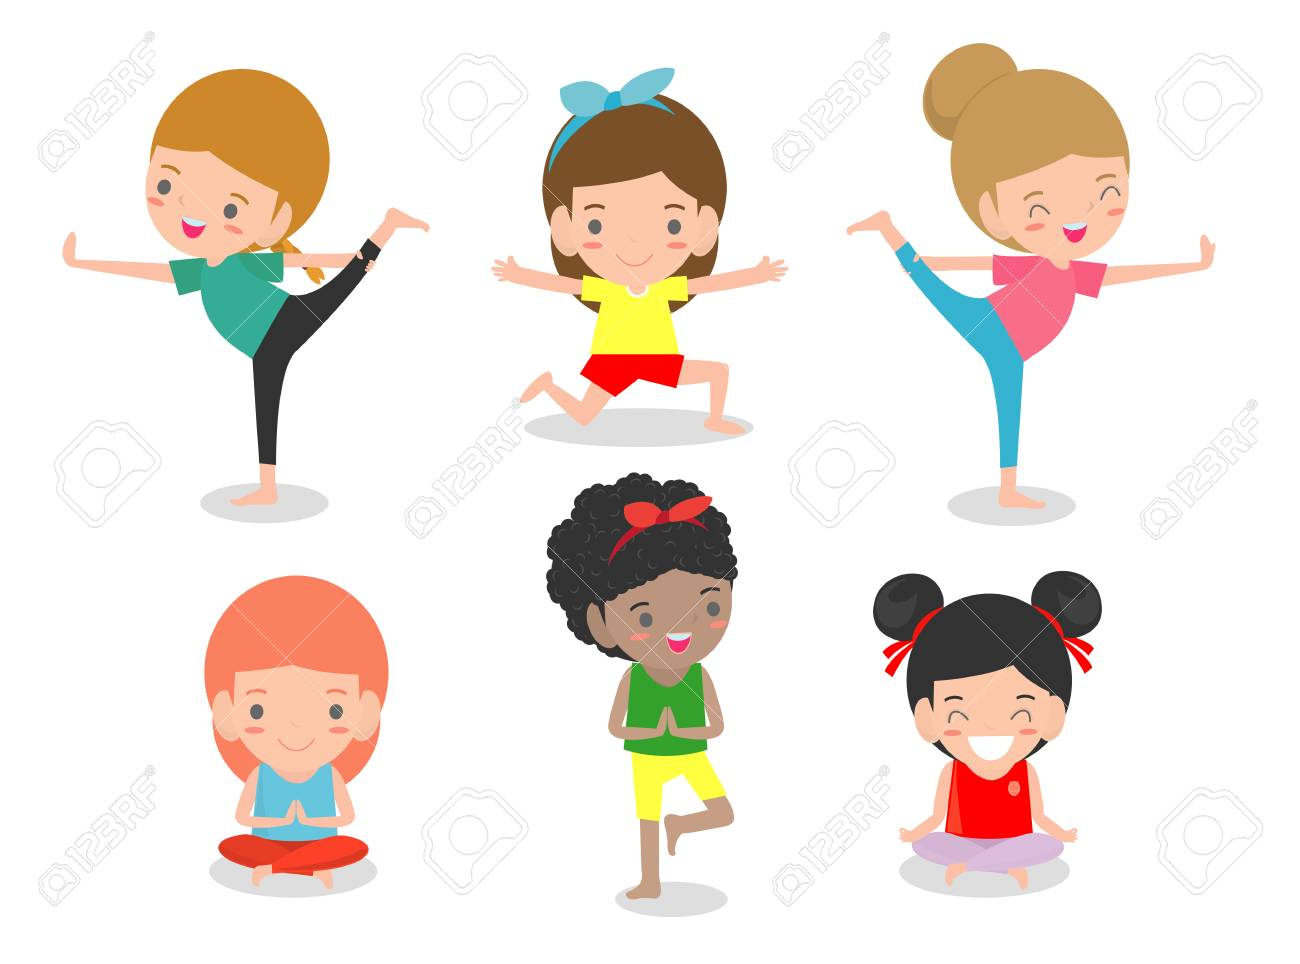 Kids Practicing Yoga Happy Cartoon Children Practicing Yoga Royalty Free Cliparts Vectors And Stock Illustration Image 105479586